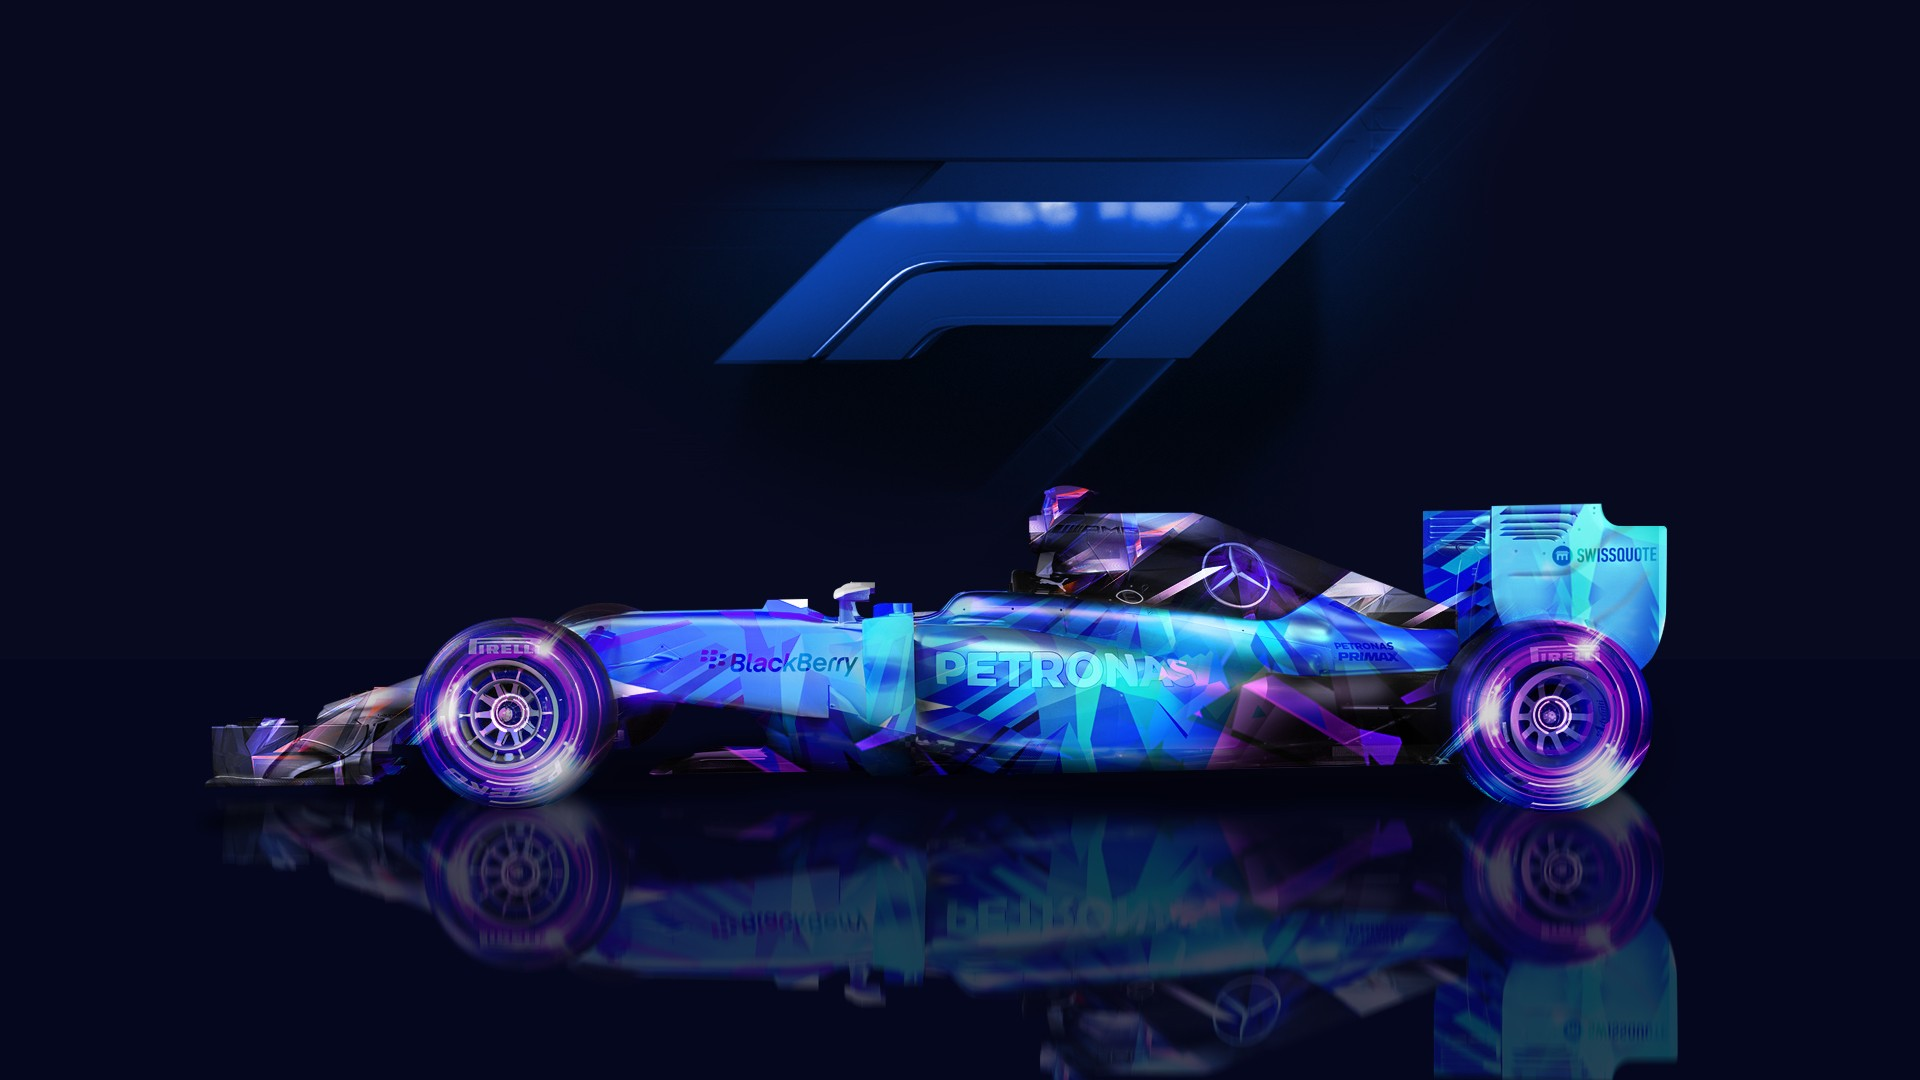 Mercedes F1 W05 Formula One Racing Car Wallpapers Hd Wallpapers